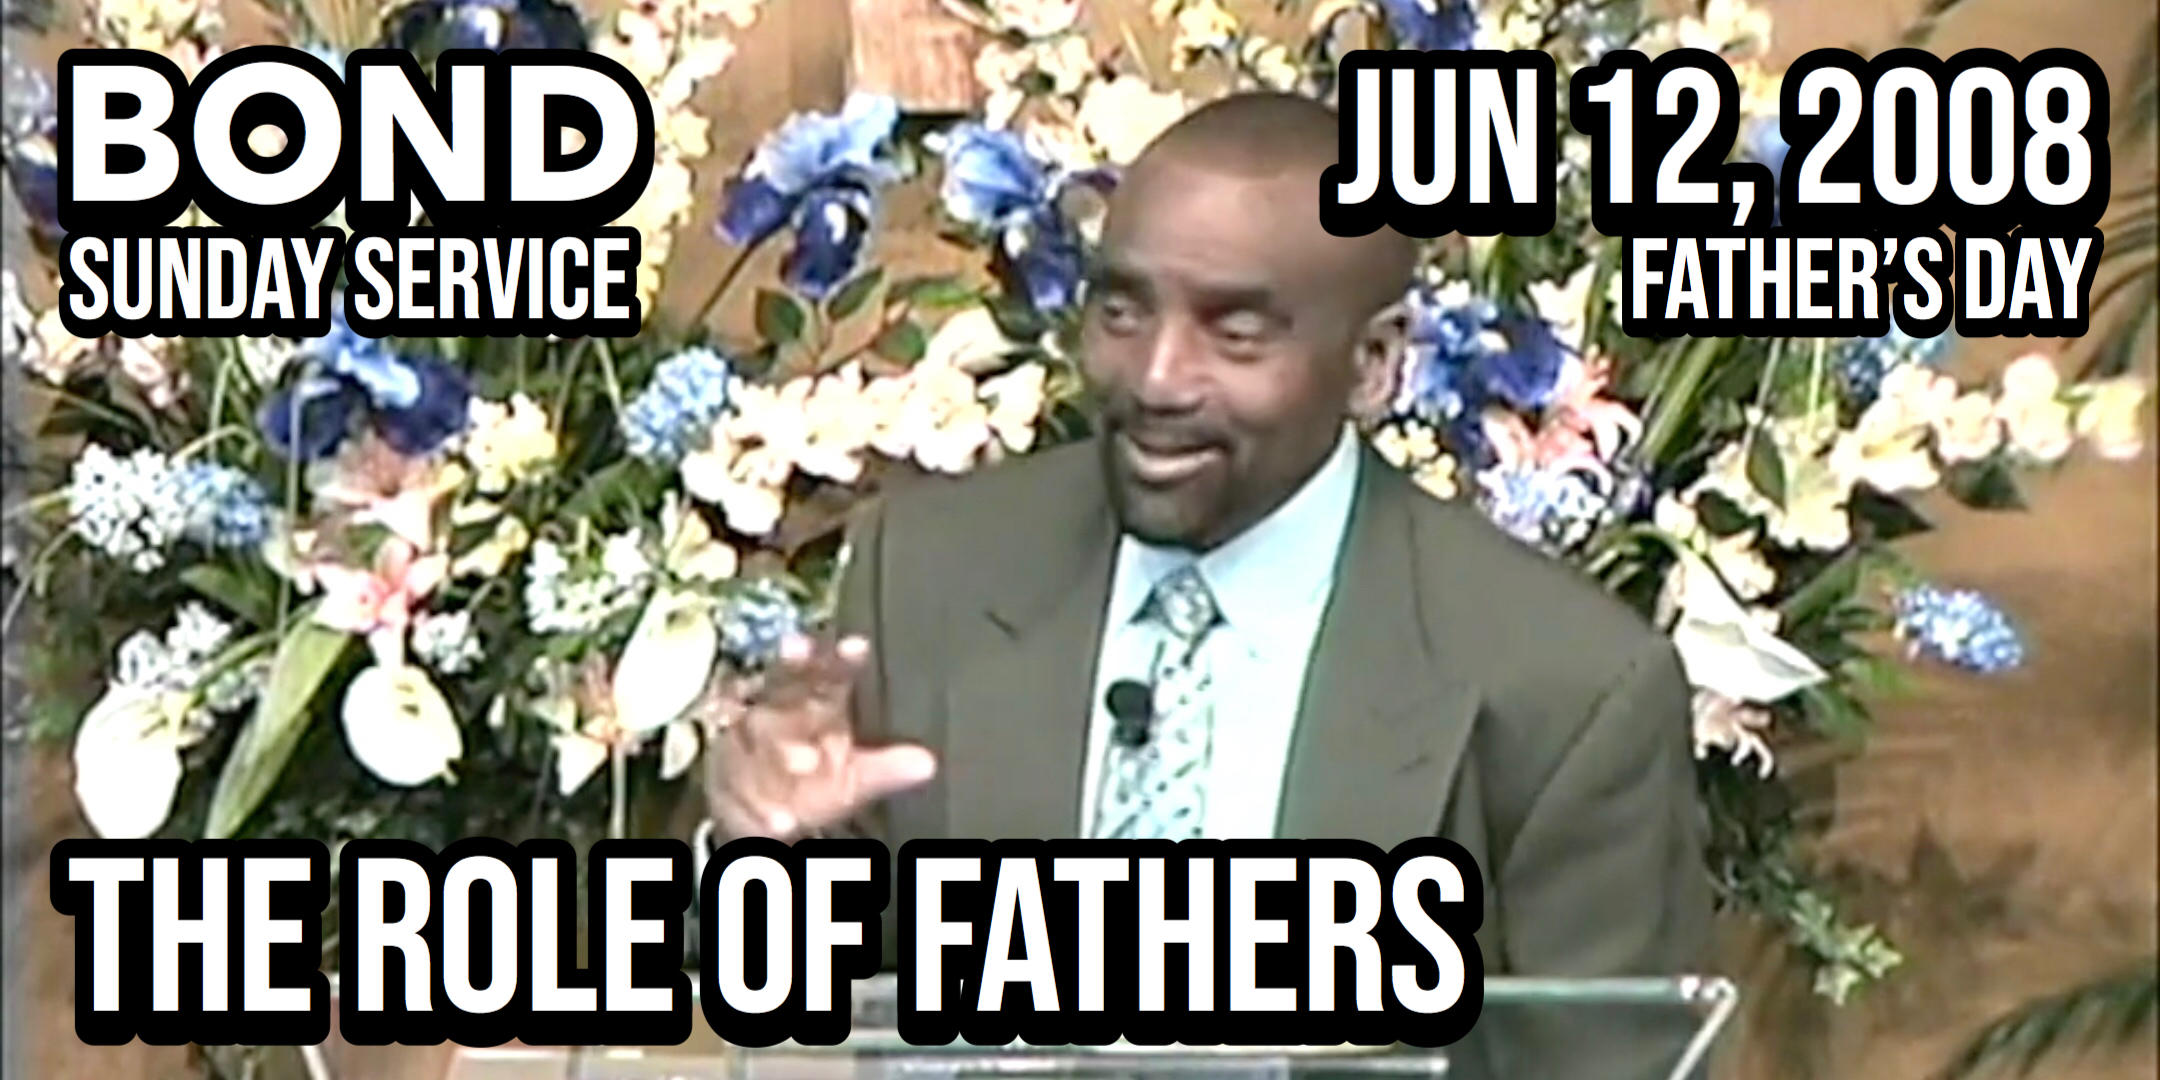 The Role of Fathers (Sunday Service, Father's Day 2008)